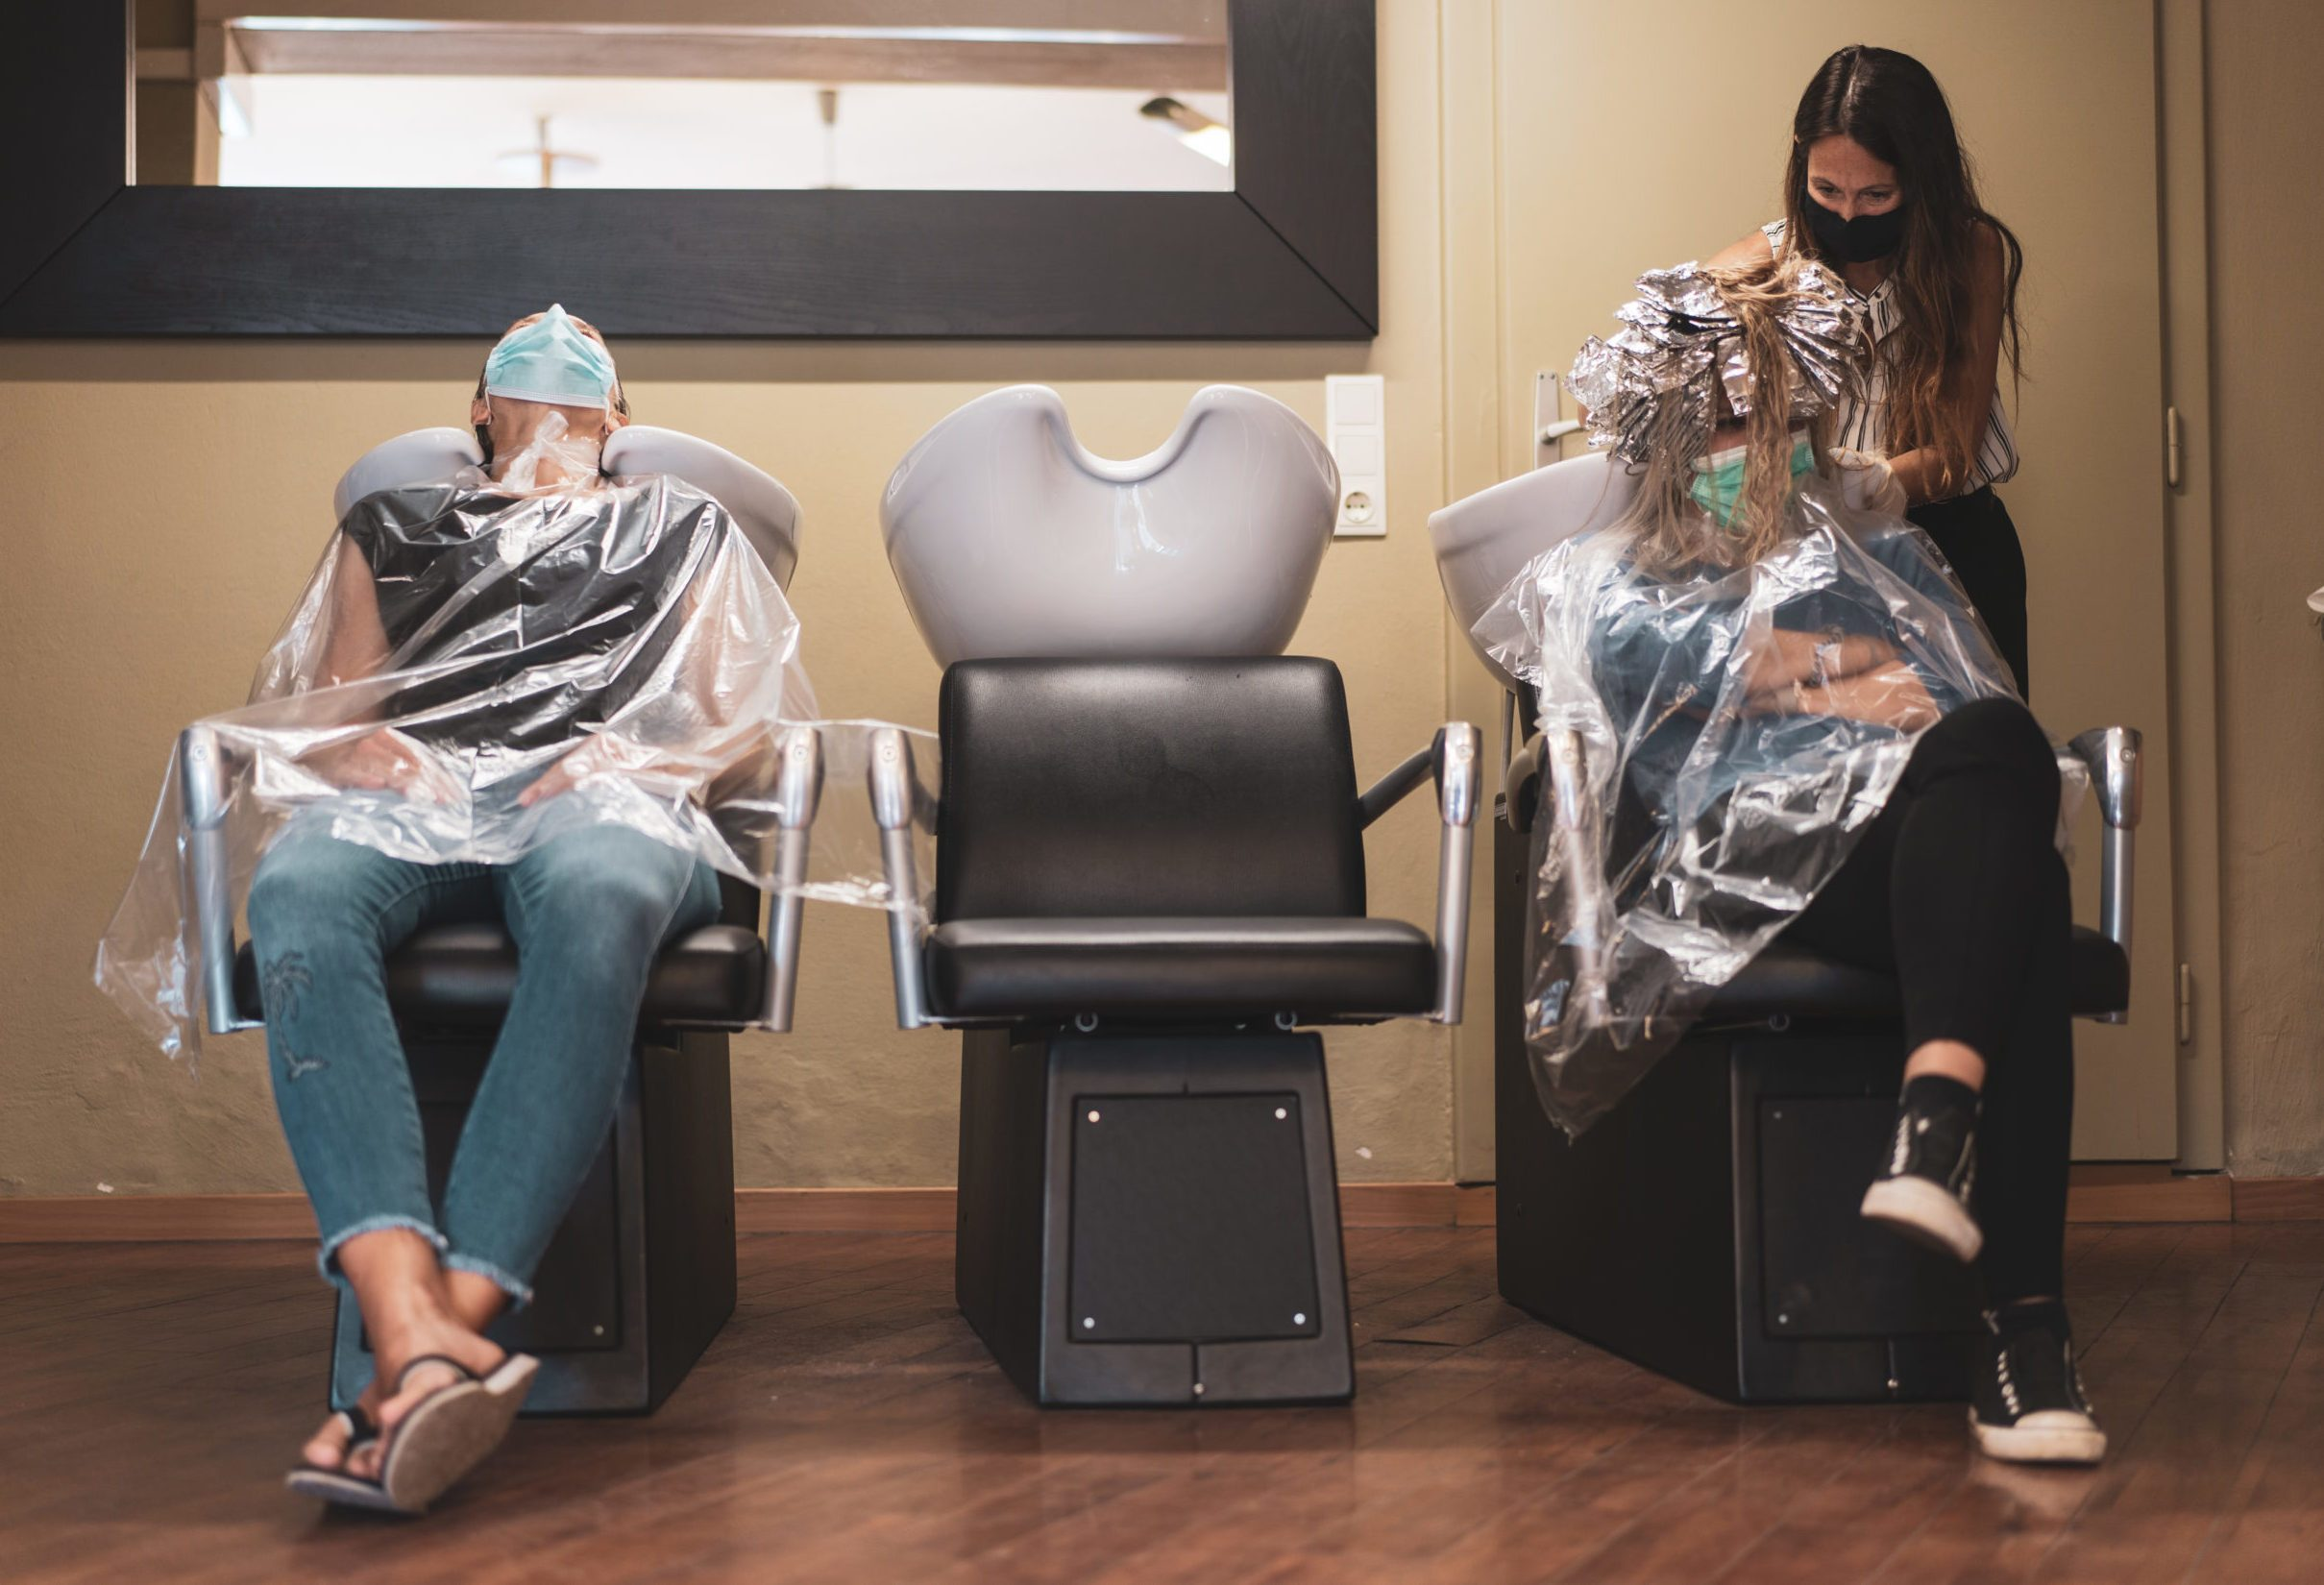 hair salon reopen with safety precautions after coronavirus lockdown